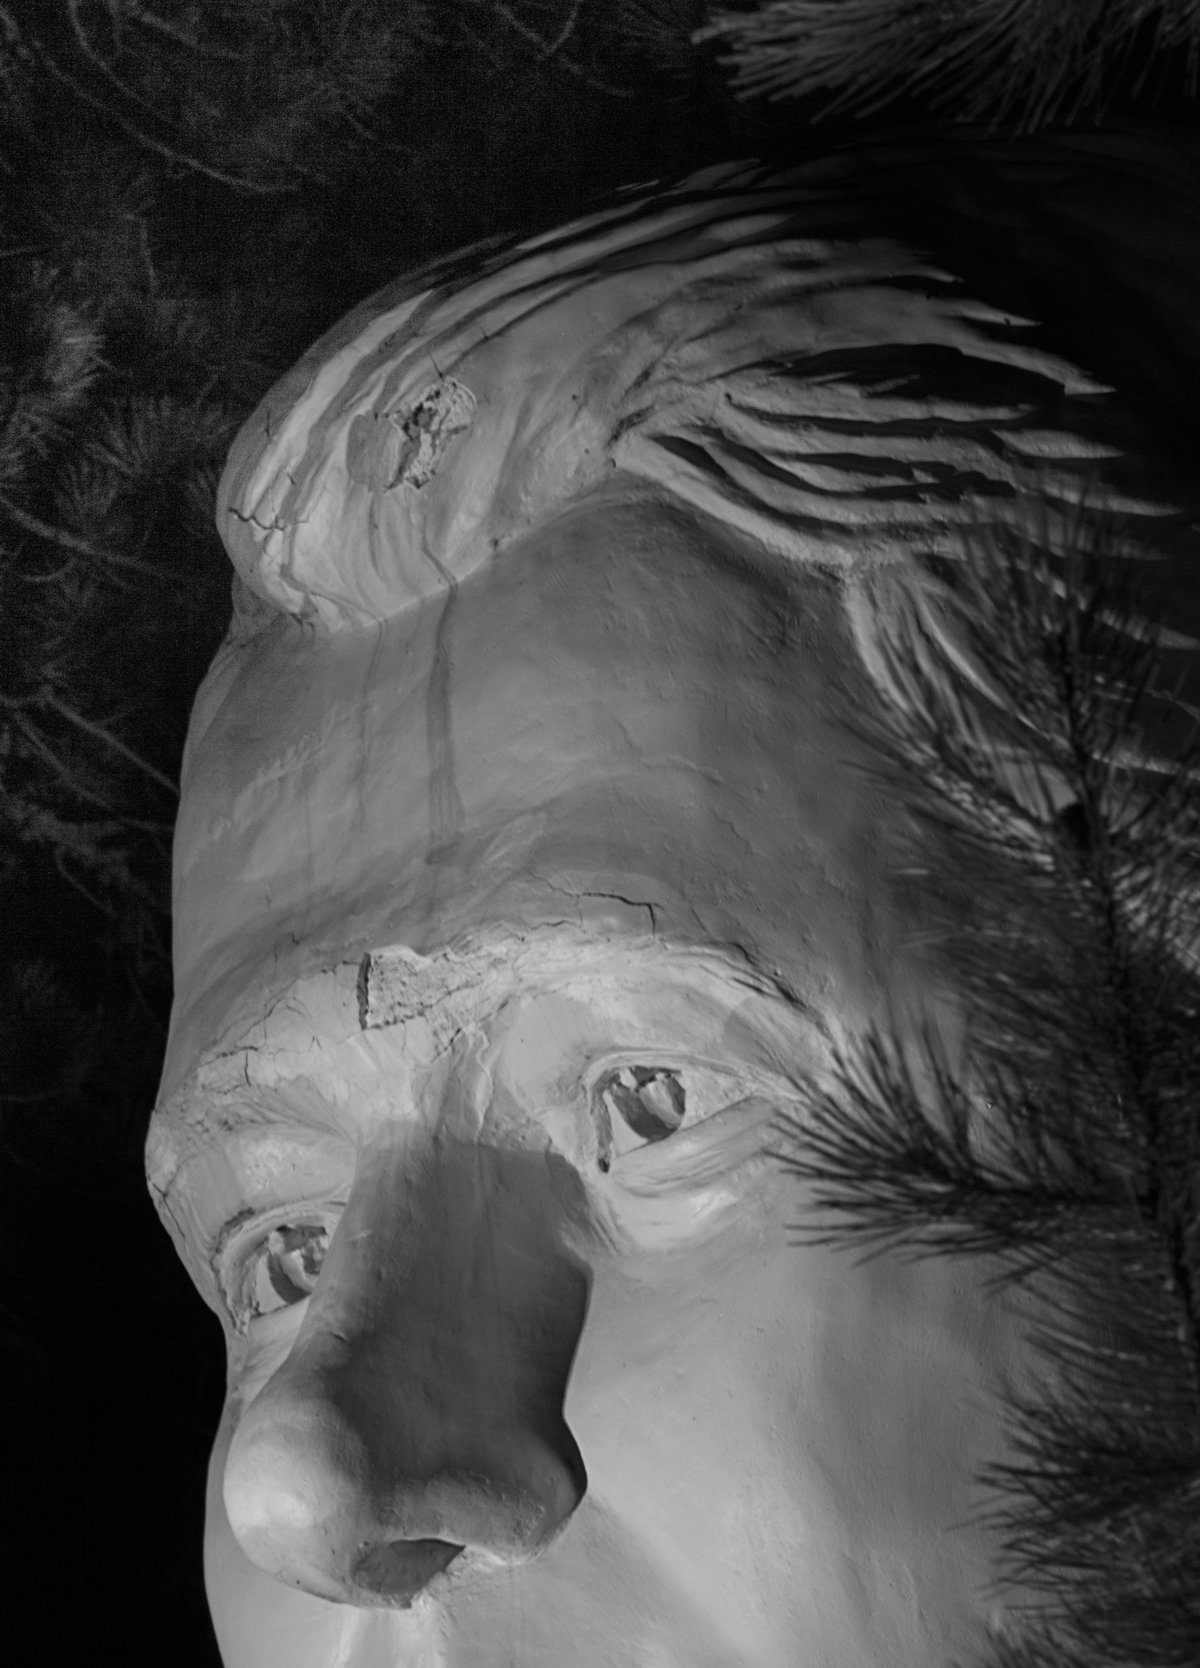 amanda hankerson photographed abandoned sculptures of president's heads in the black hills of south dakota